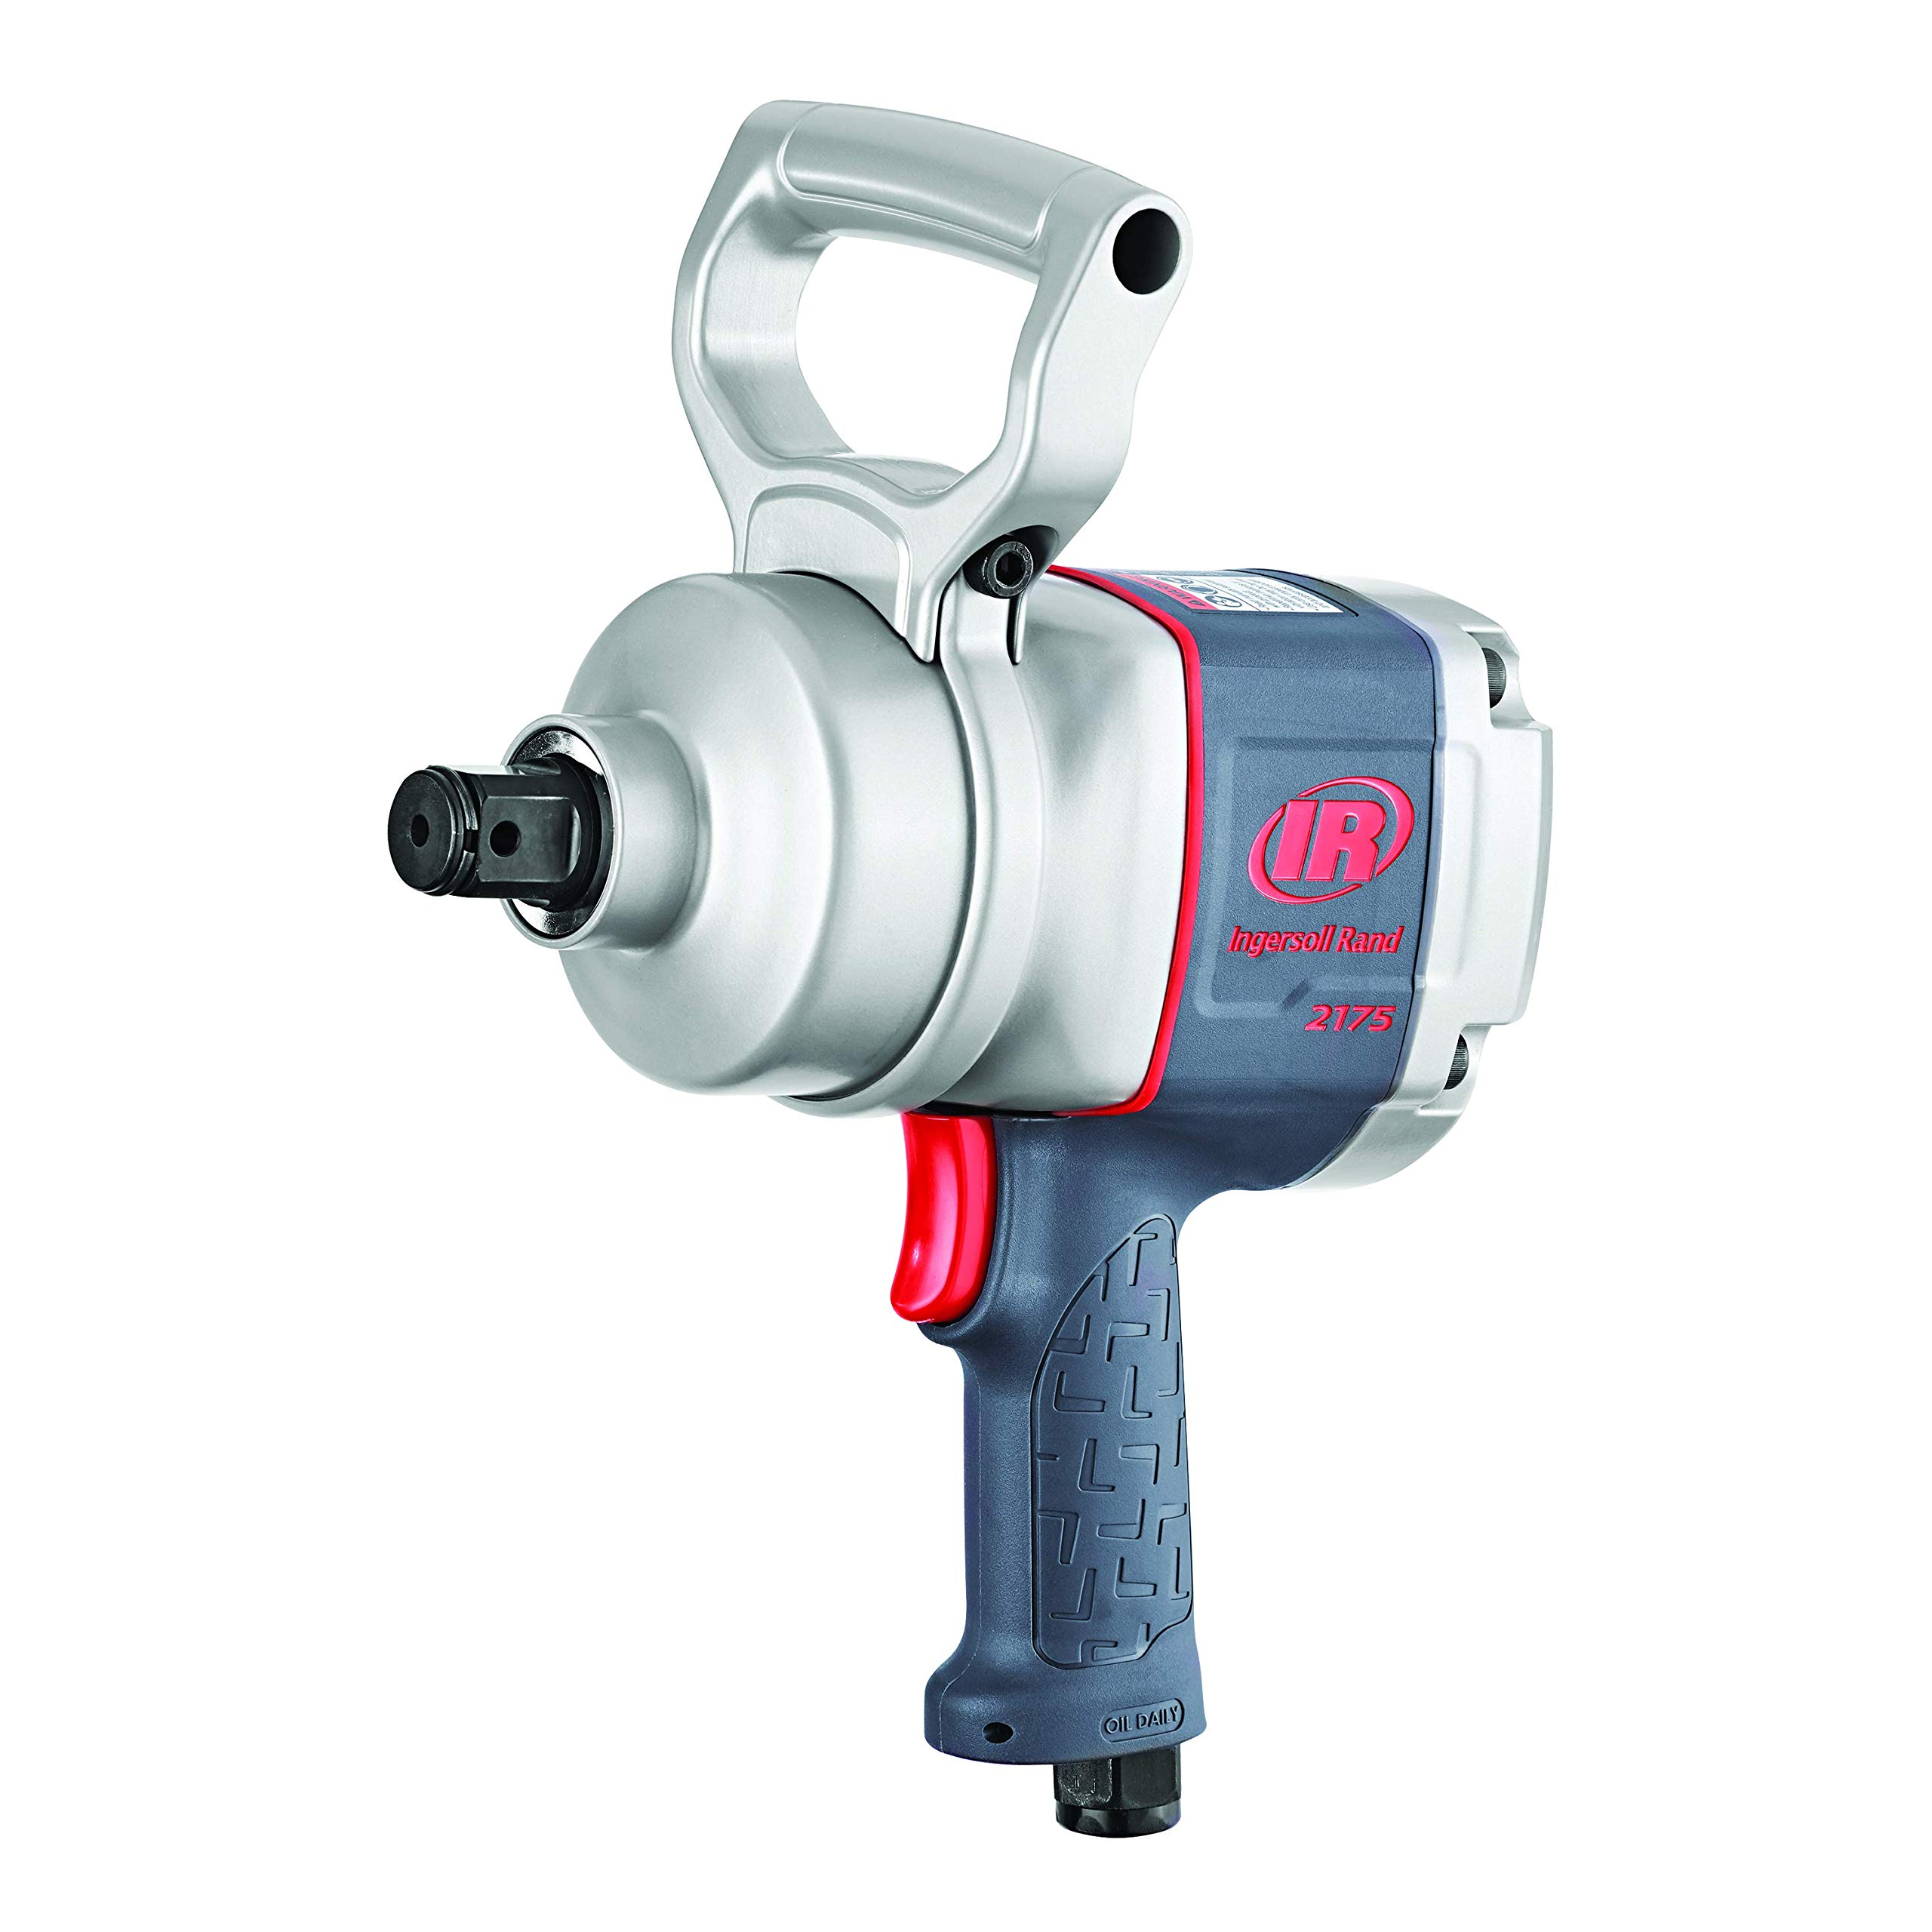 Ingersoll-Rand 271 Super Duty 1-Inch Pnuematic Impact Wrench